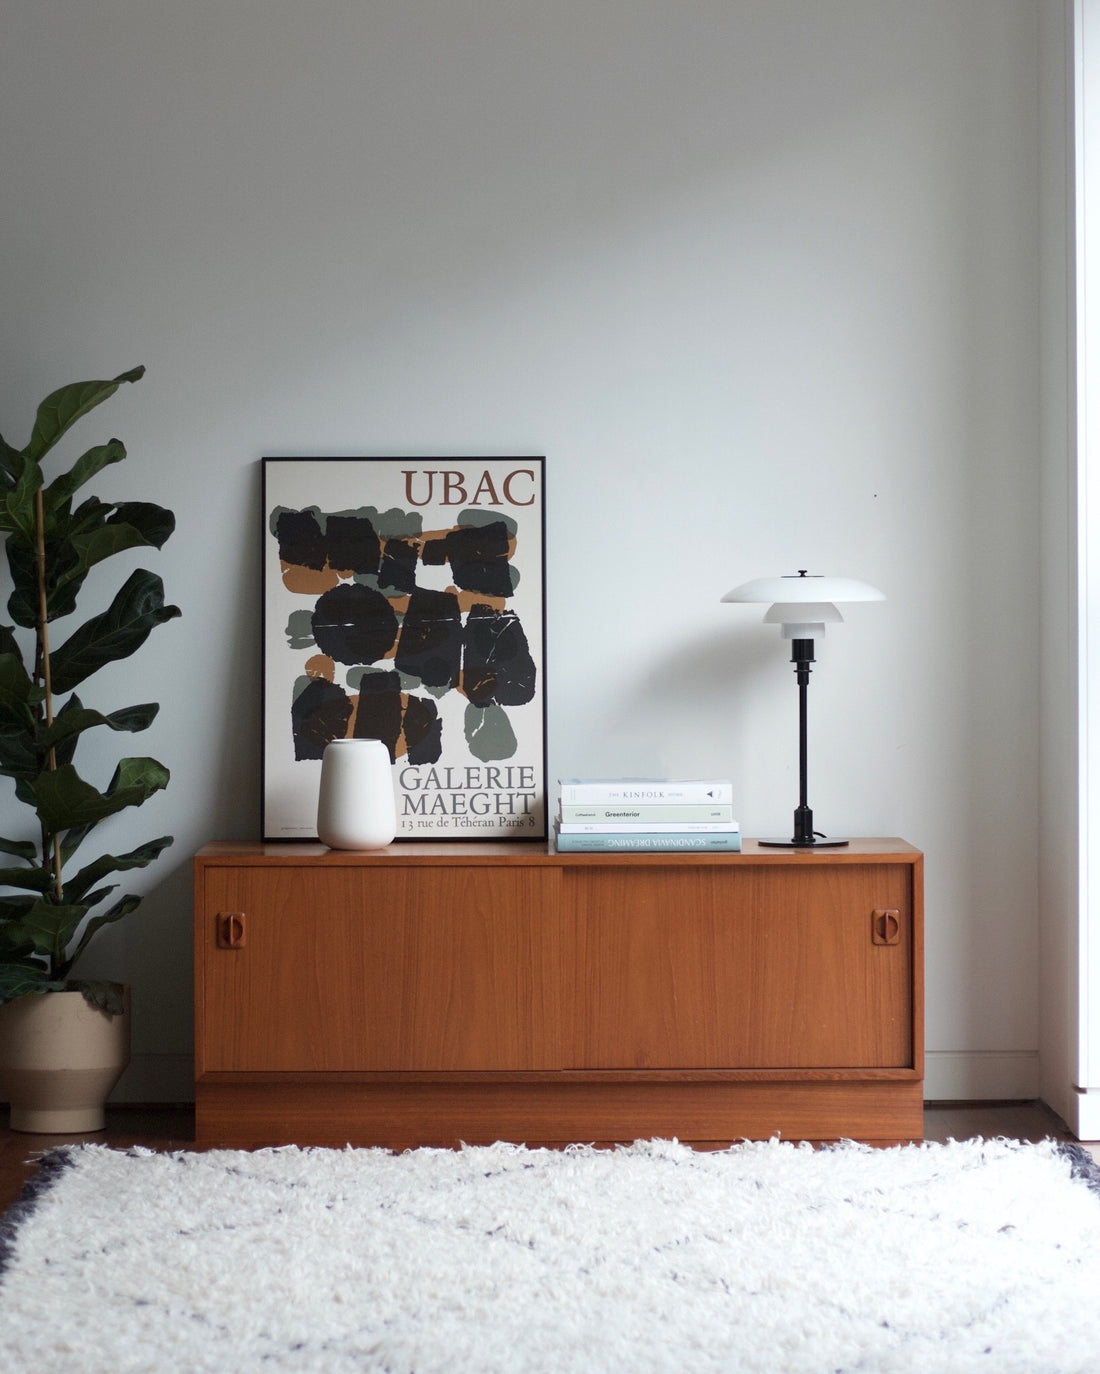 Danish Vintage Sideboard available at NABOshop Ditte Fisher vase PH lamp and Galerie Maeght poster taken by Christina Thaisen